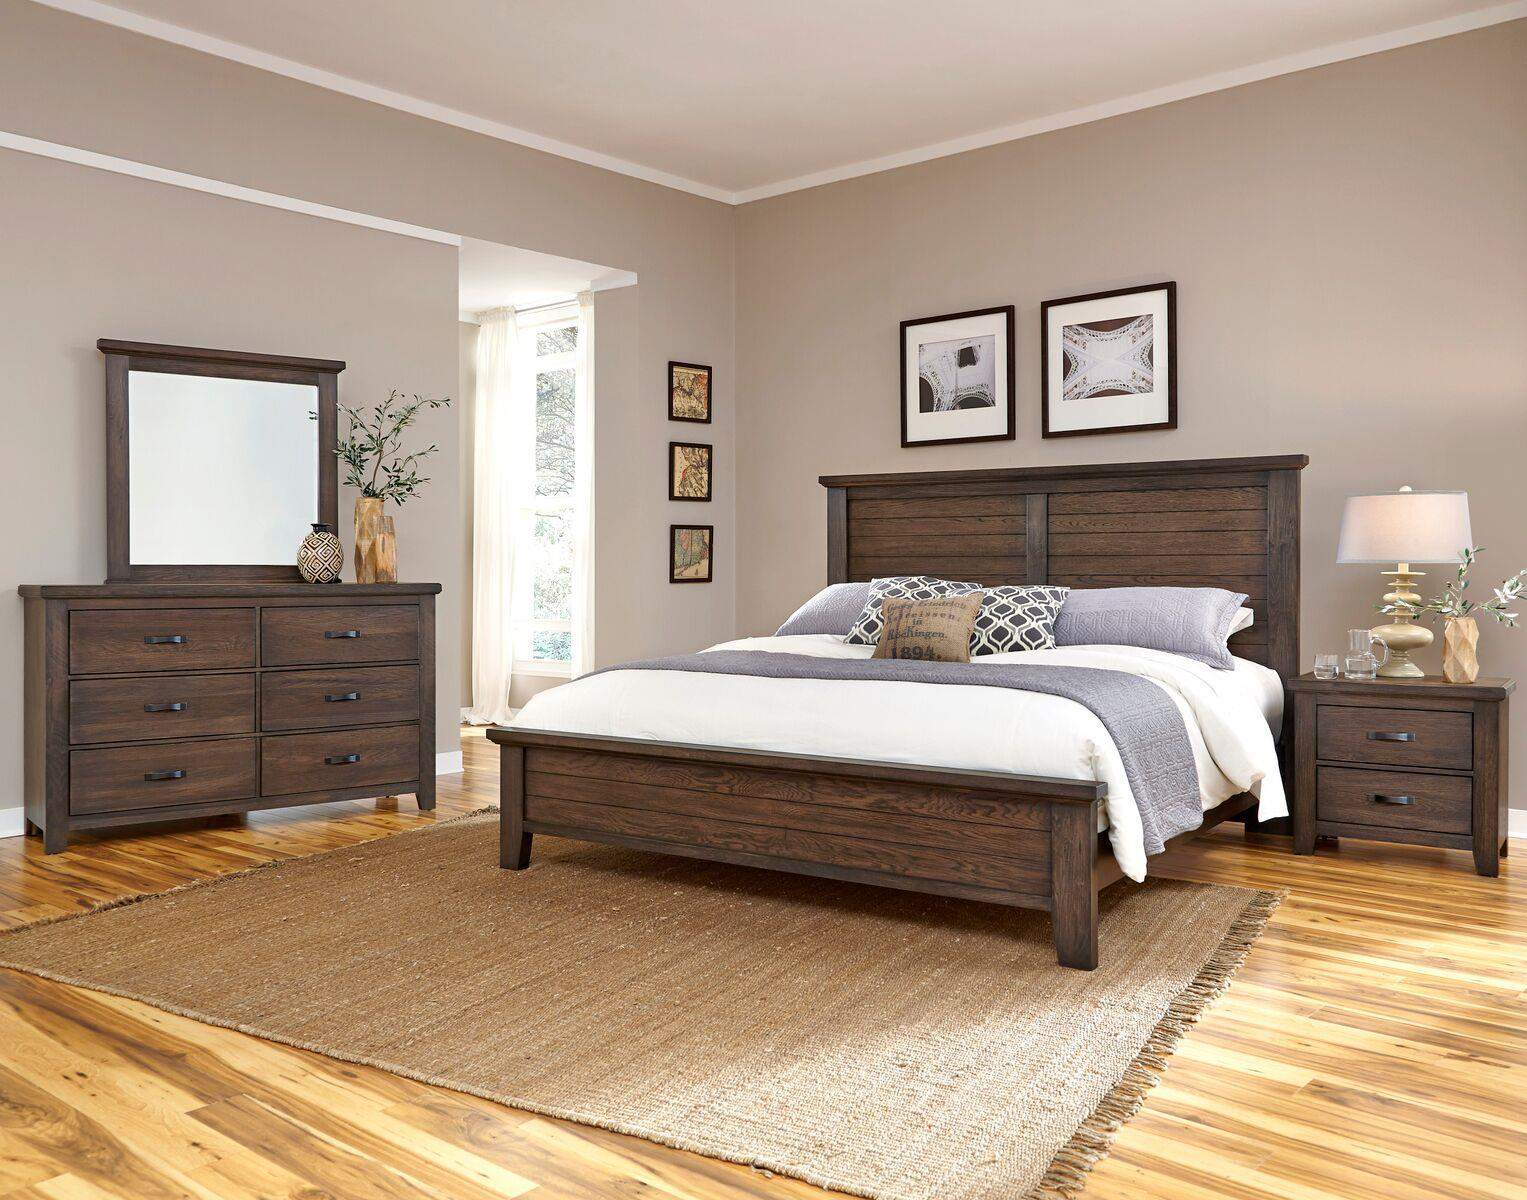 Made In Usa Bedroom Furniture Vaughan Bassett Cassell Park Dresser With Six Self Closing Drawers